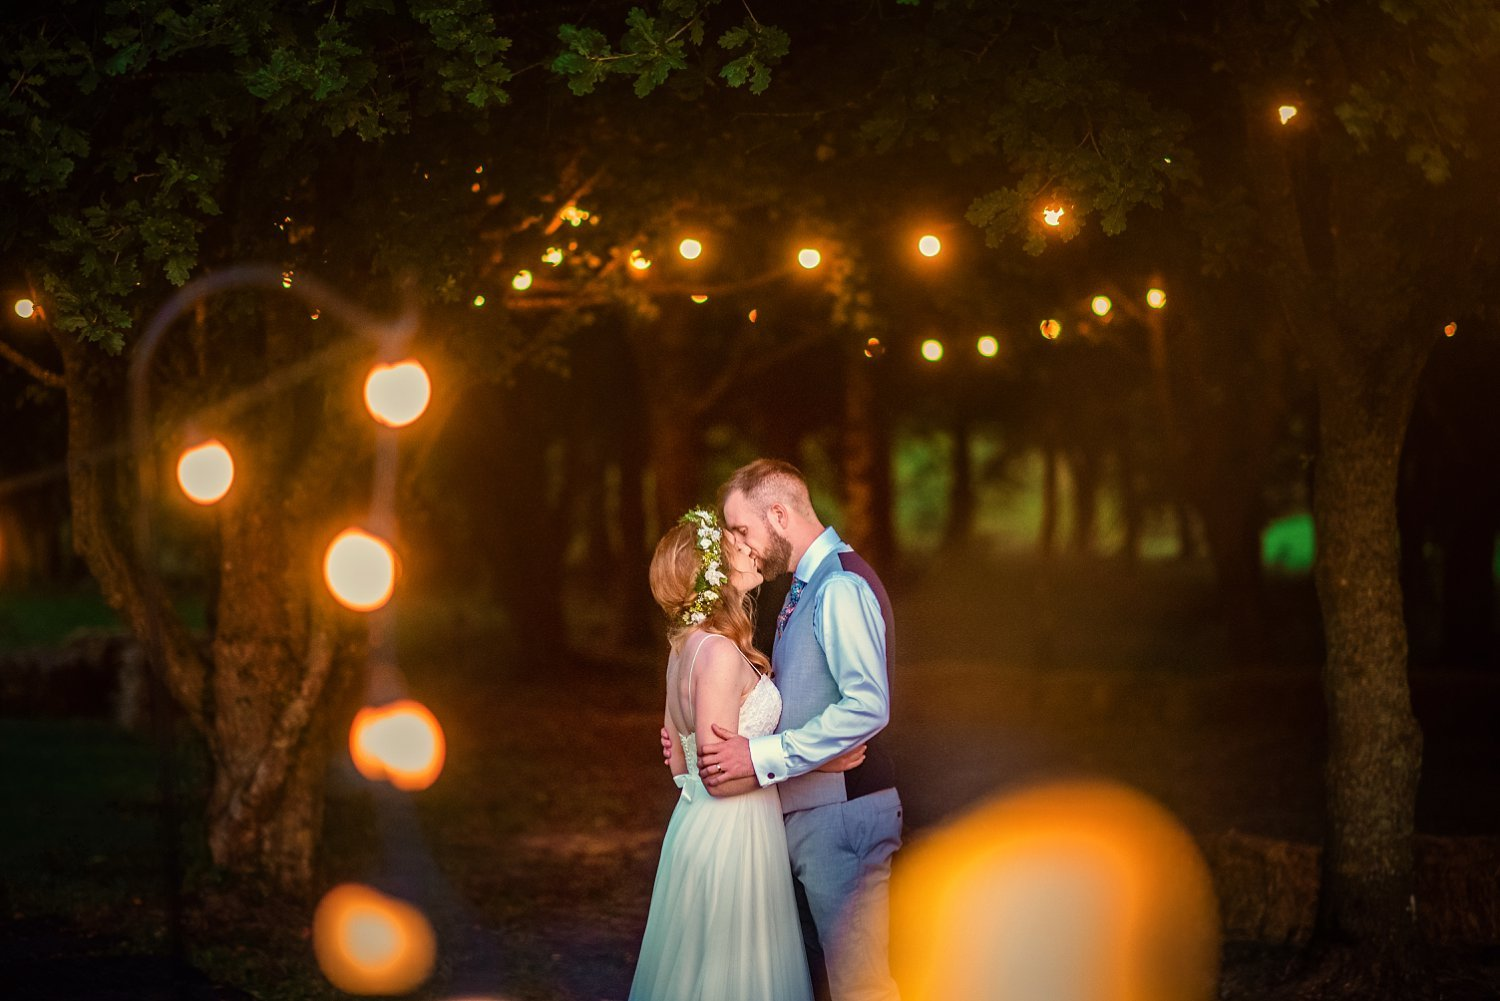 Farnham Wedding Photographer - husband and wife are kissing in the forest with fairy lights hanged on trees